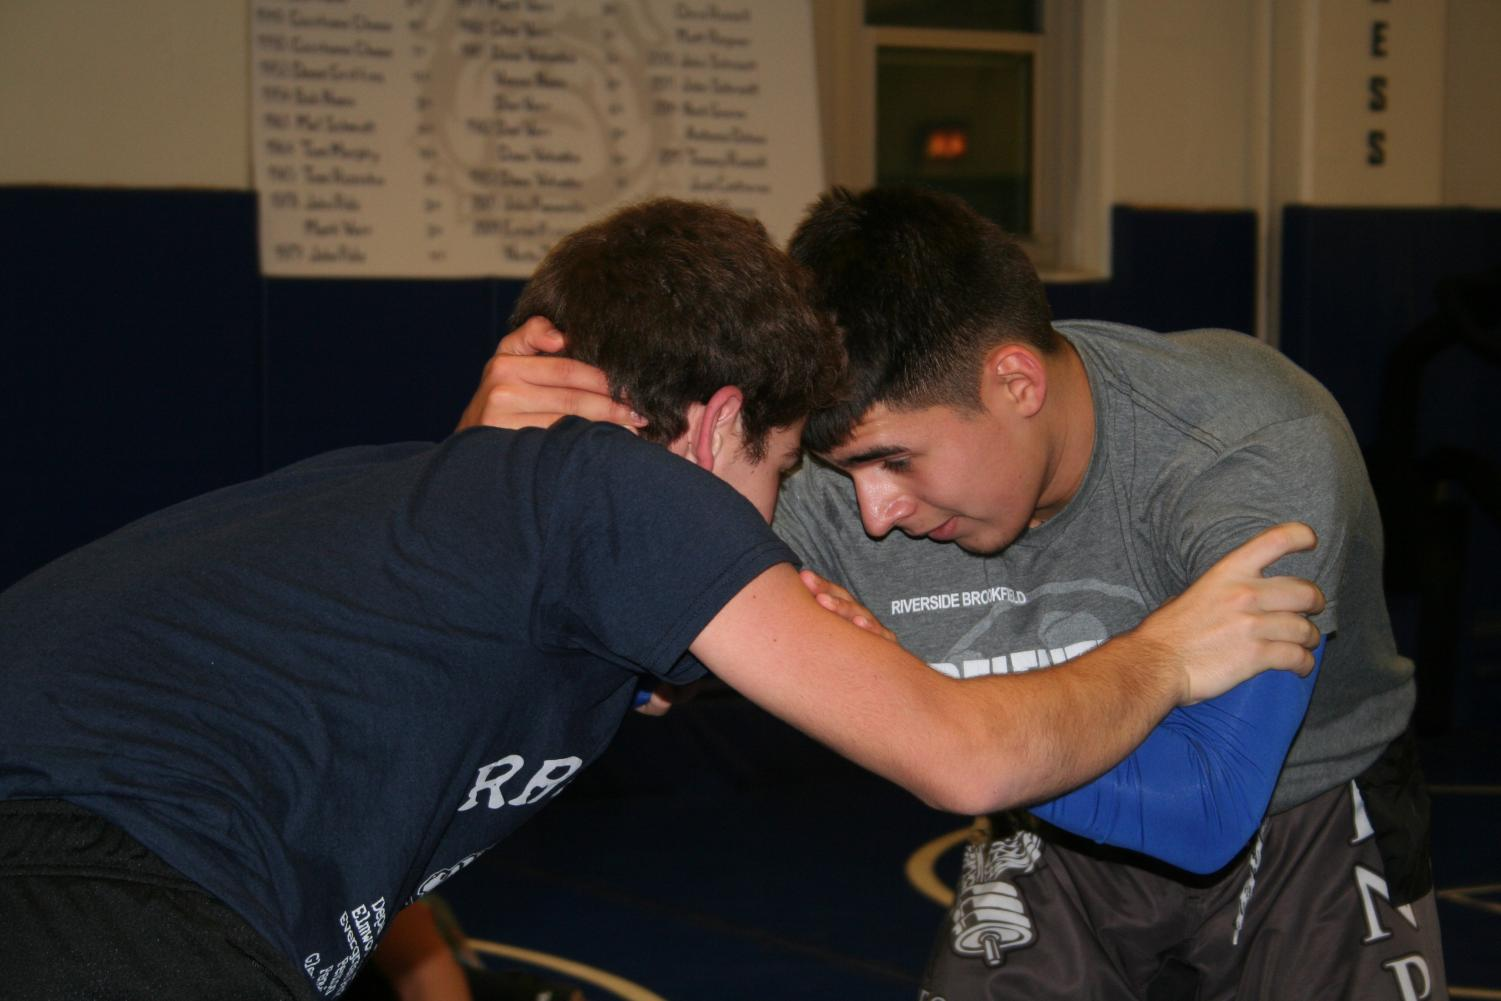 Wrestlers at practice